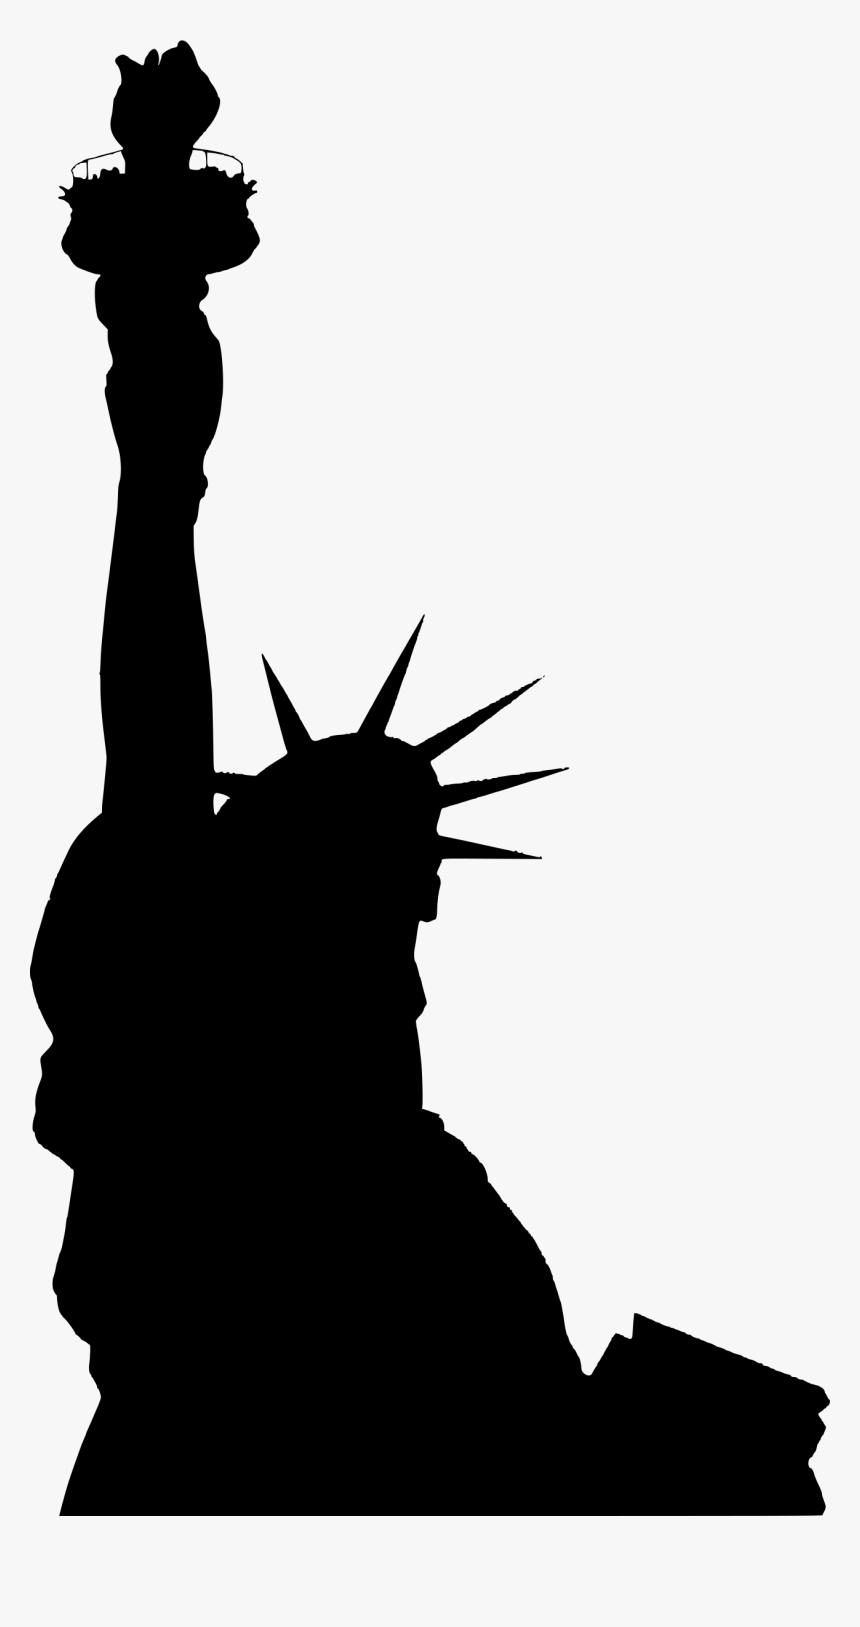 Statue Of Liberty - New York Statue Of Liberty Silhouette, HD Png Download, Free Download